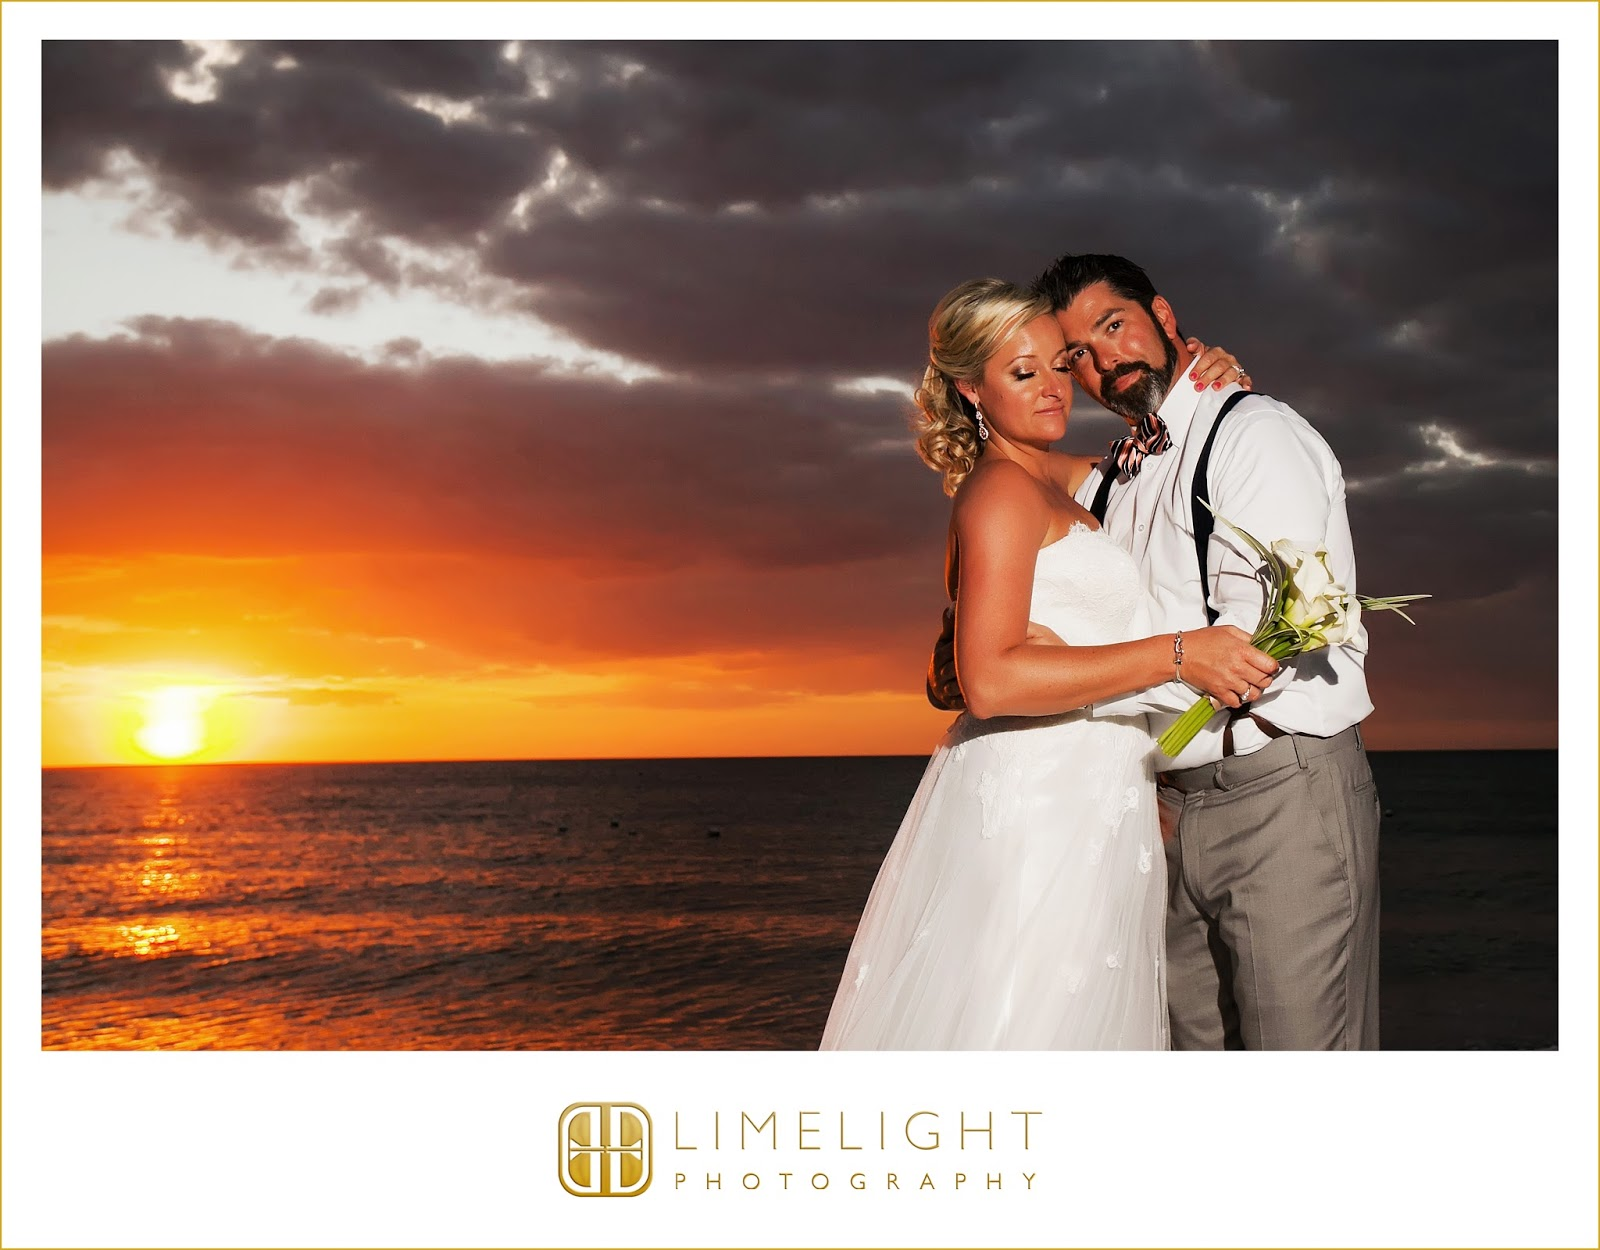 Limelight Photography Emily And Seth Featured In The